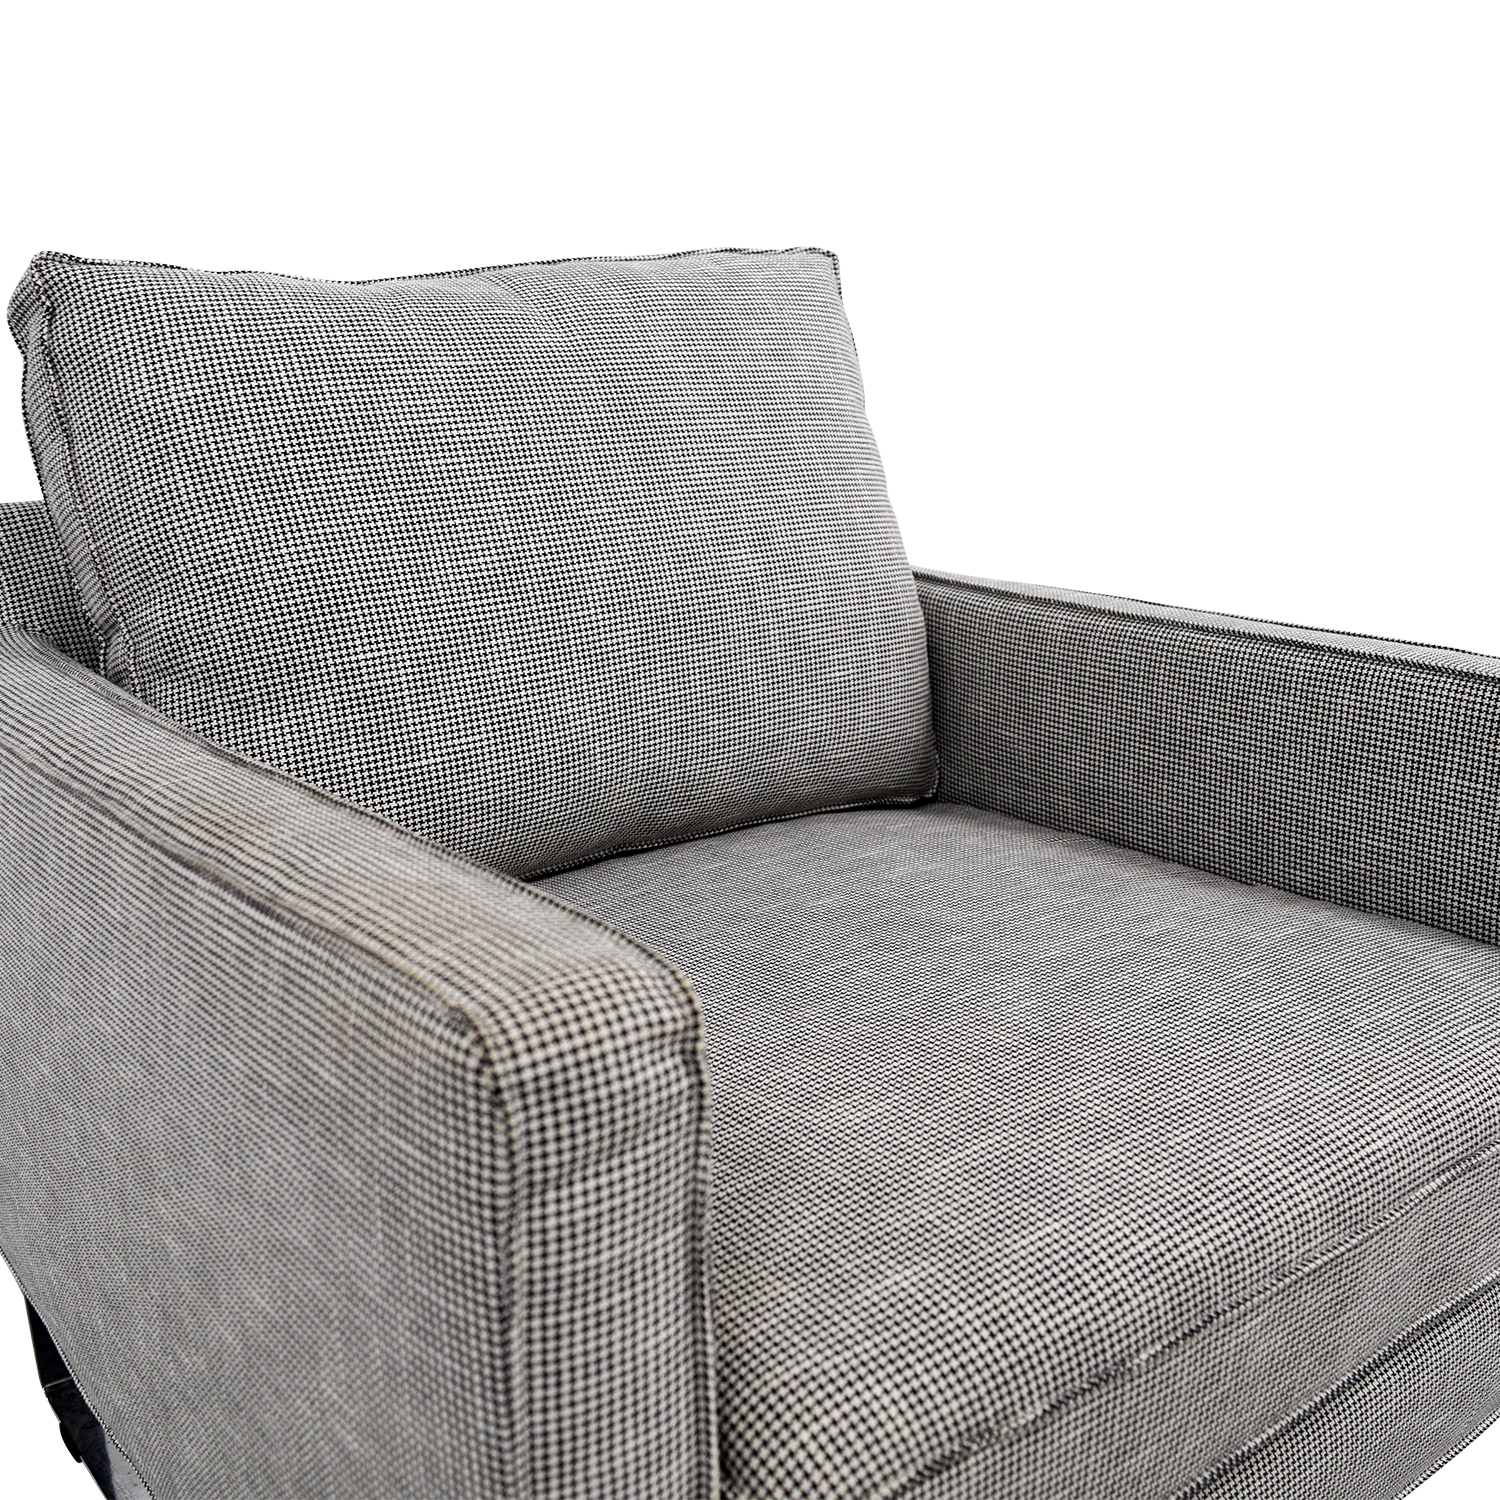 Surprising 69 Off Ikea Ikea Mellby Dogtooth Accent Chair Chairs Evergreenethics Interior Chair Design Evergreenethicsorg